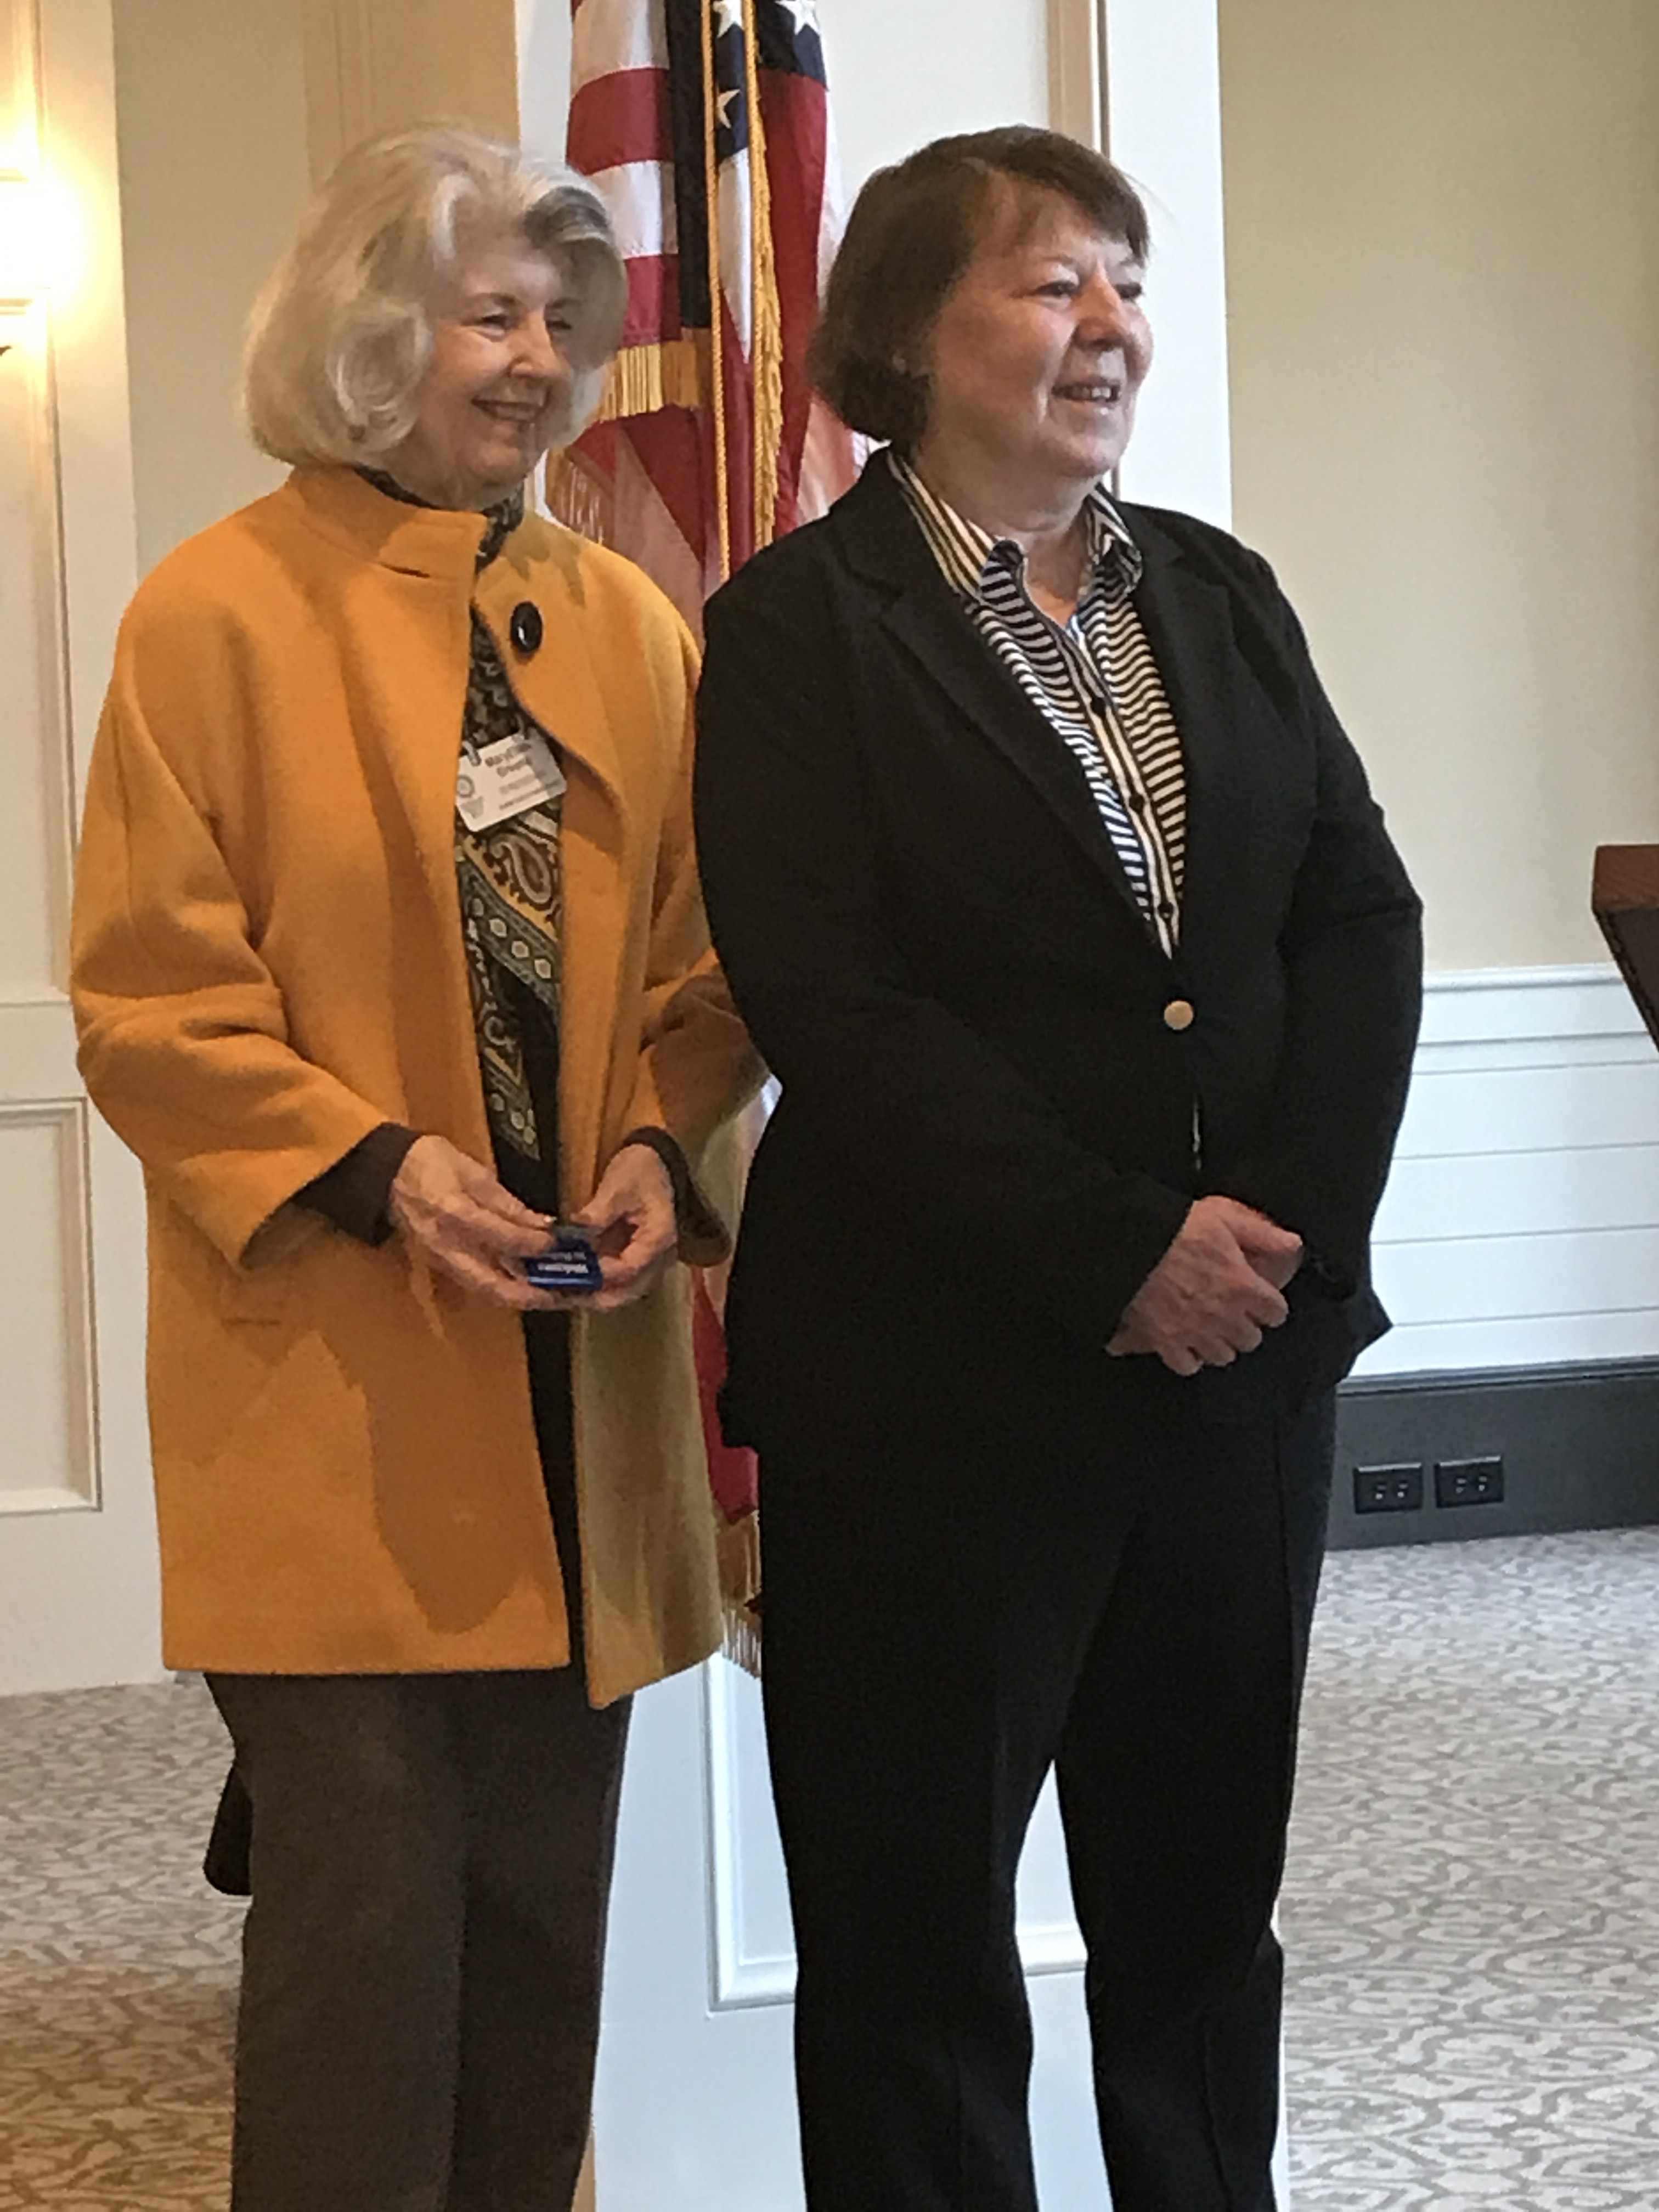 New member Maureen Cannon (right) with her sponsor MaryEllen Greene.